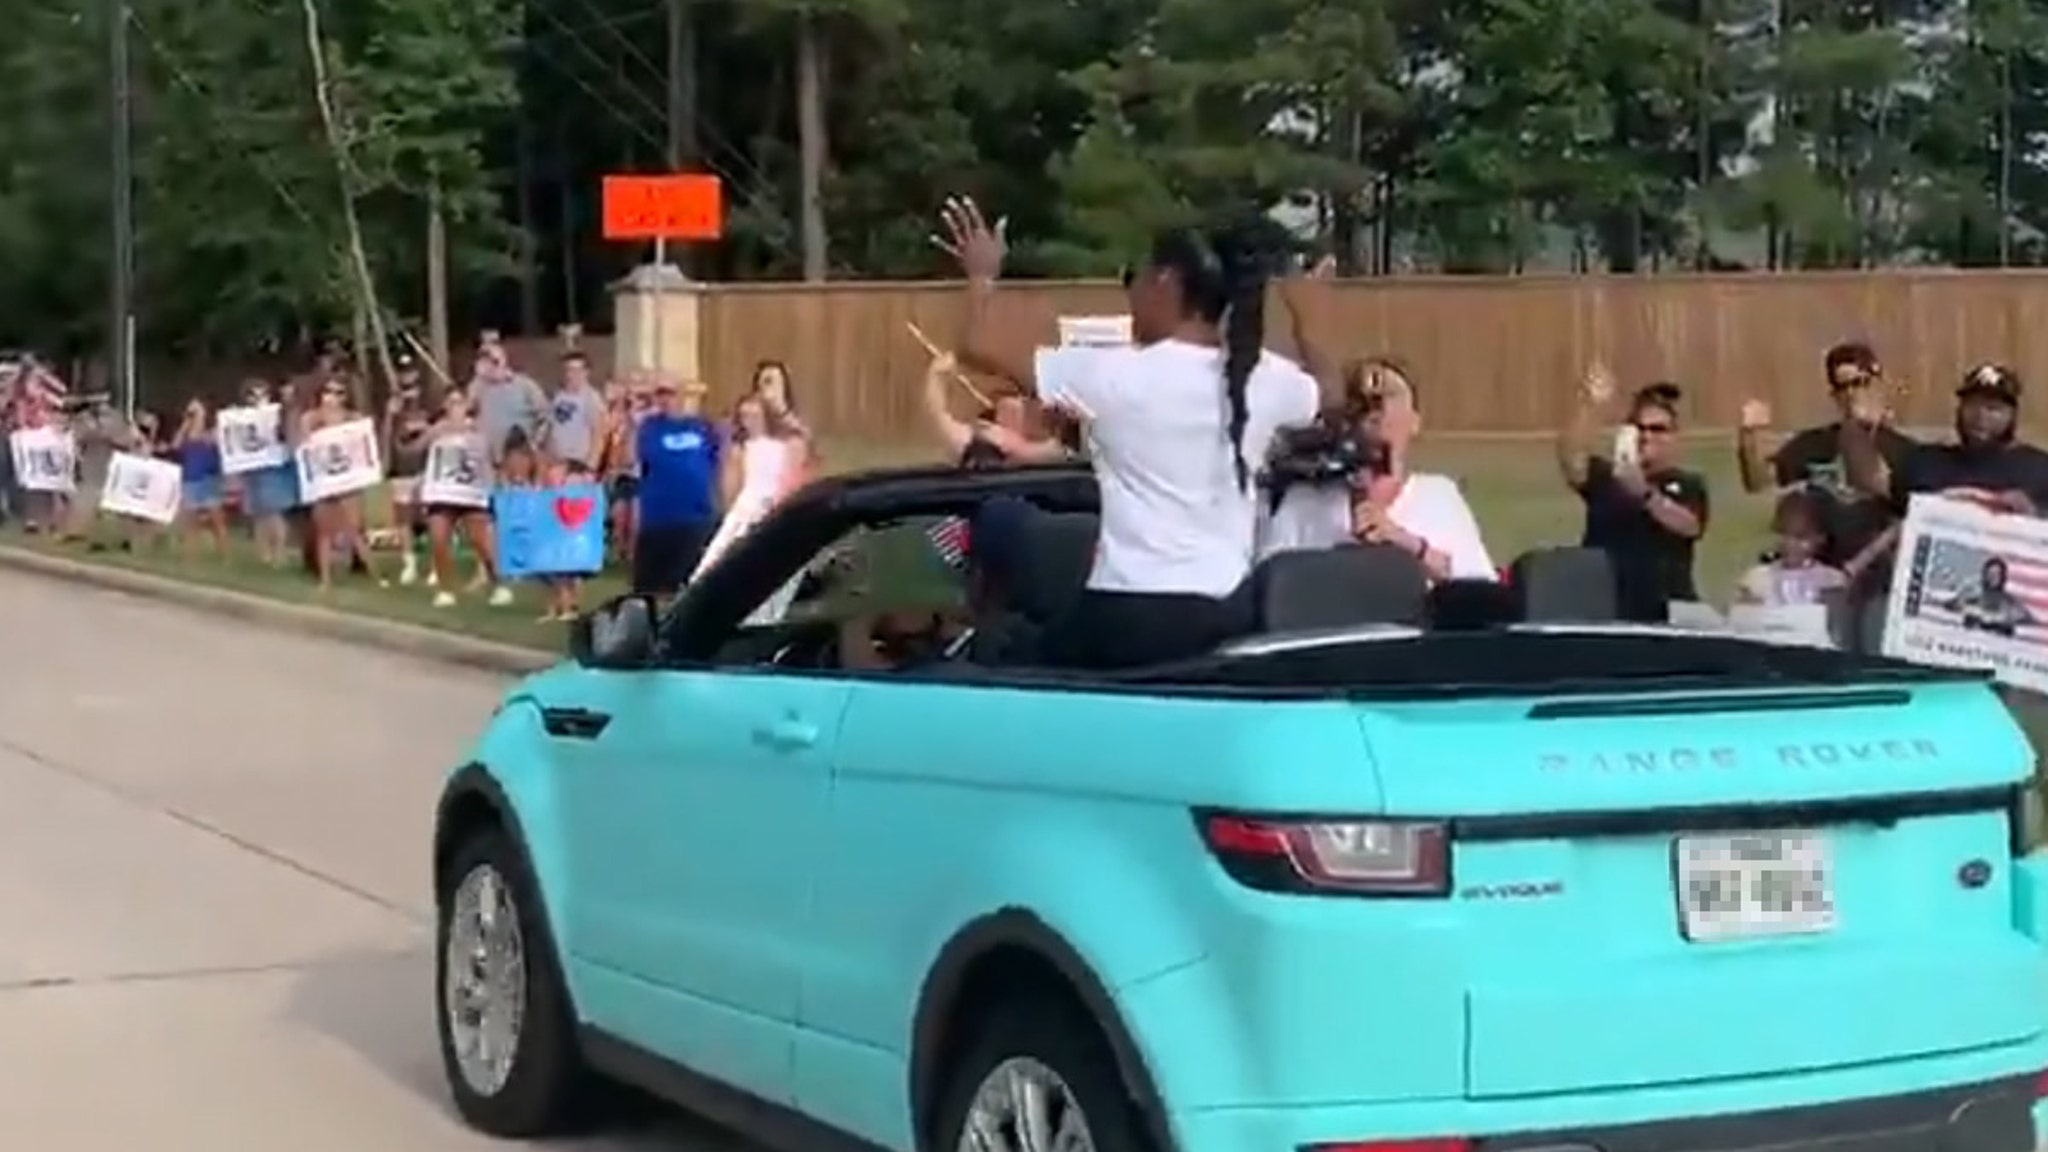 Simone Biles Welcomed Home With Parade In Texas After Olympics